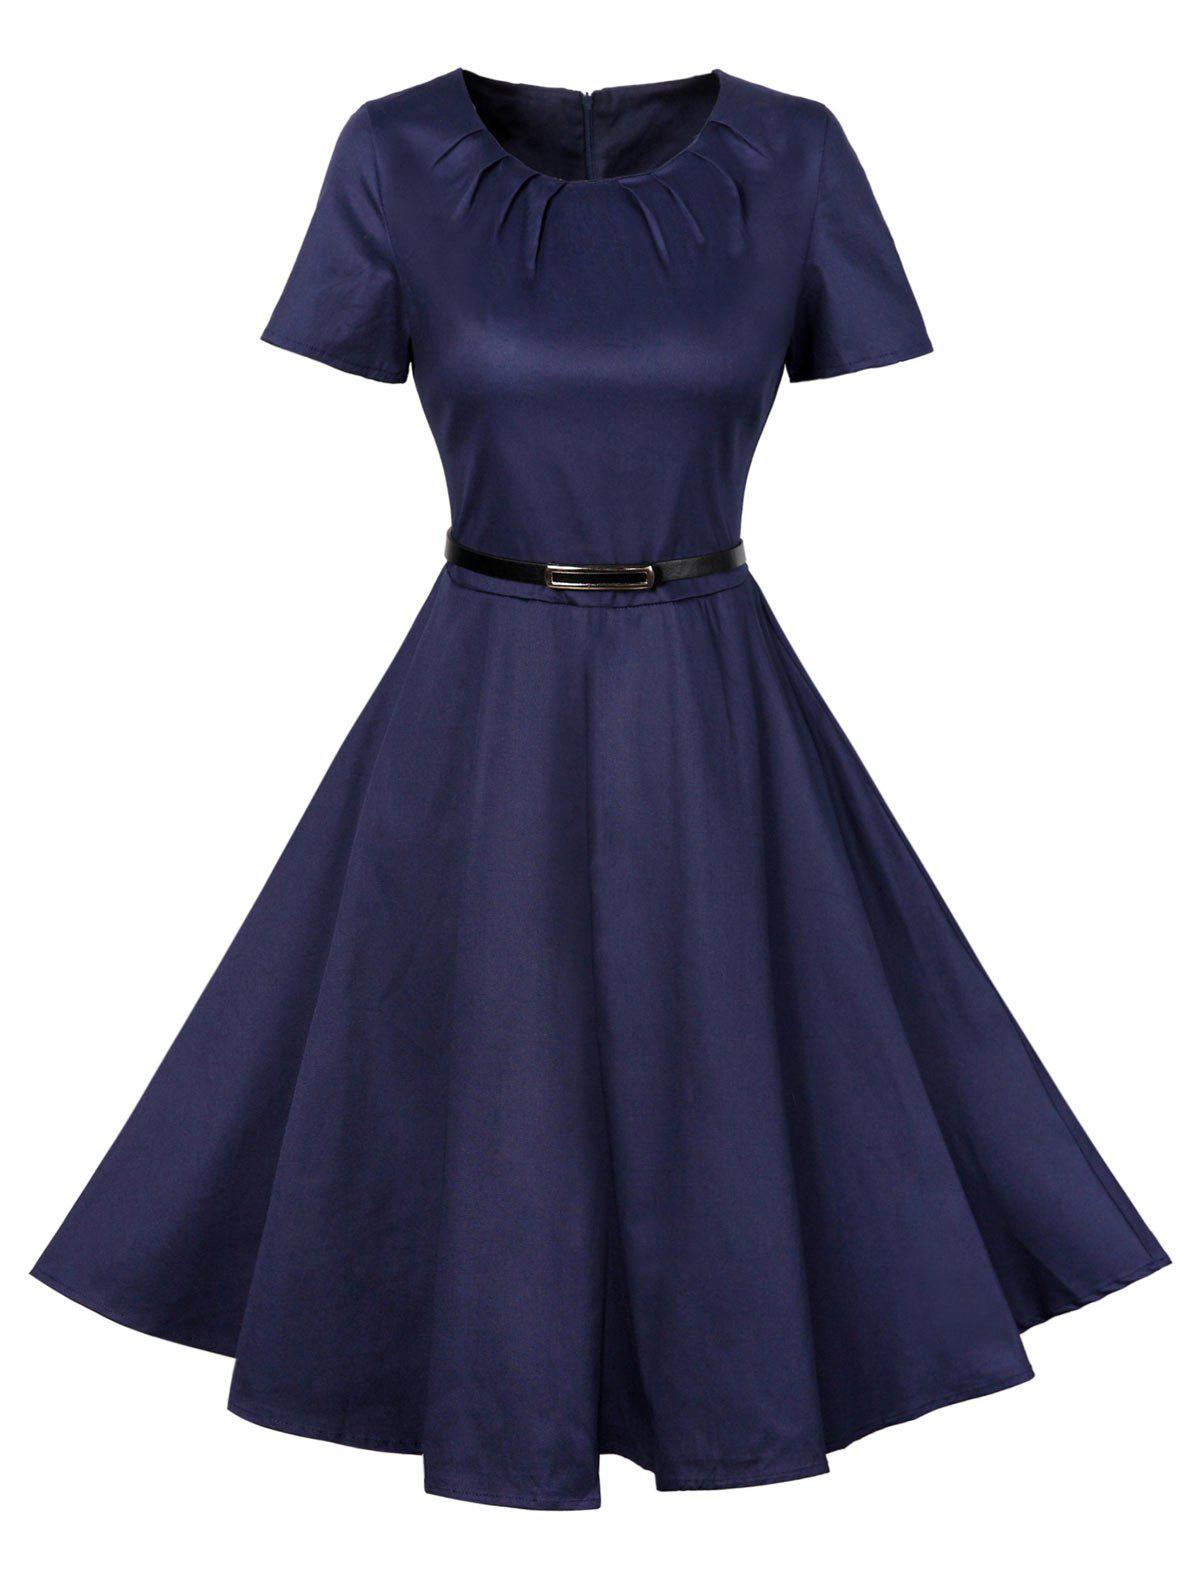 Affordable Vintage Short Sleeve Swing Skater Dress